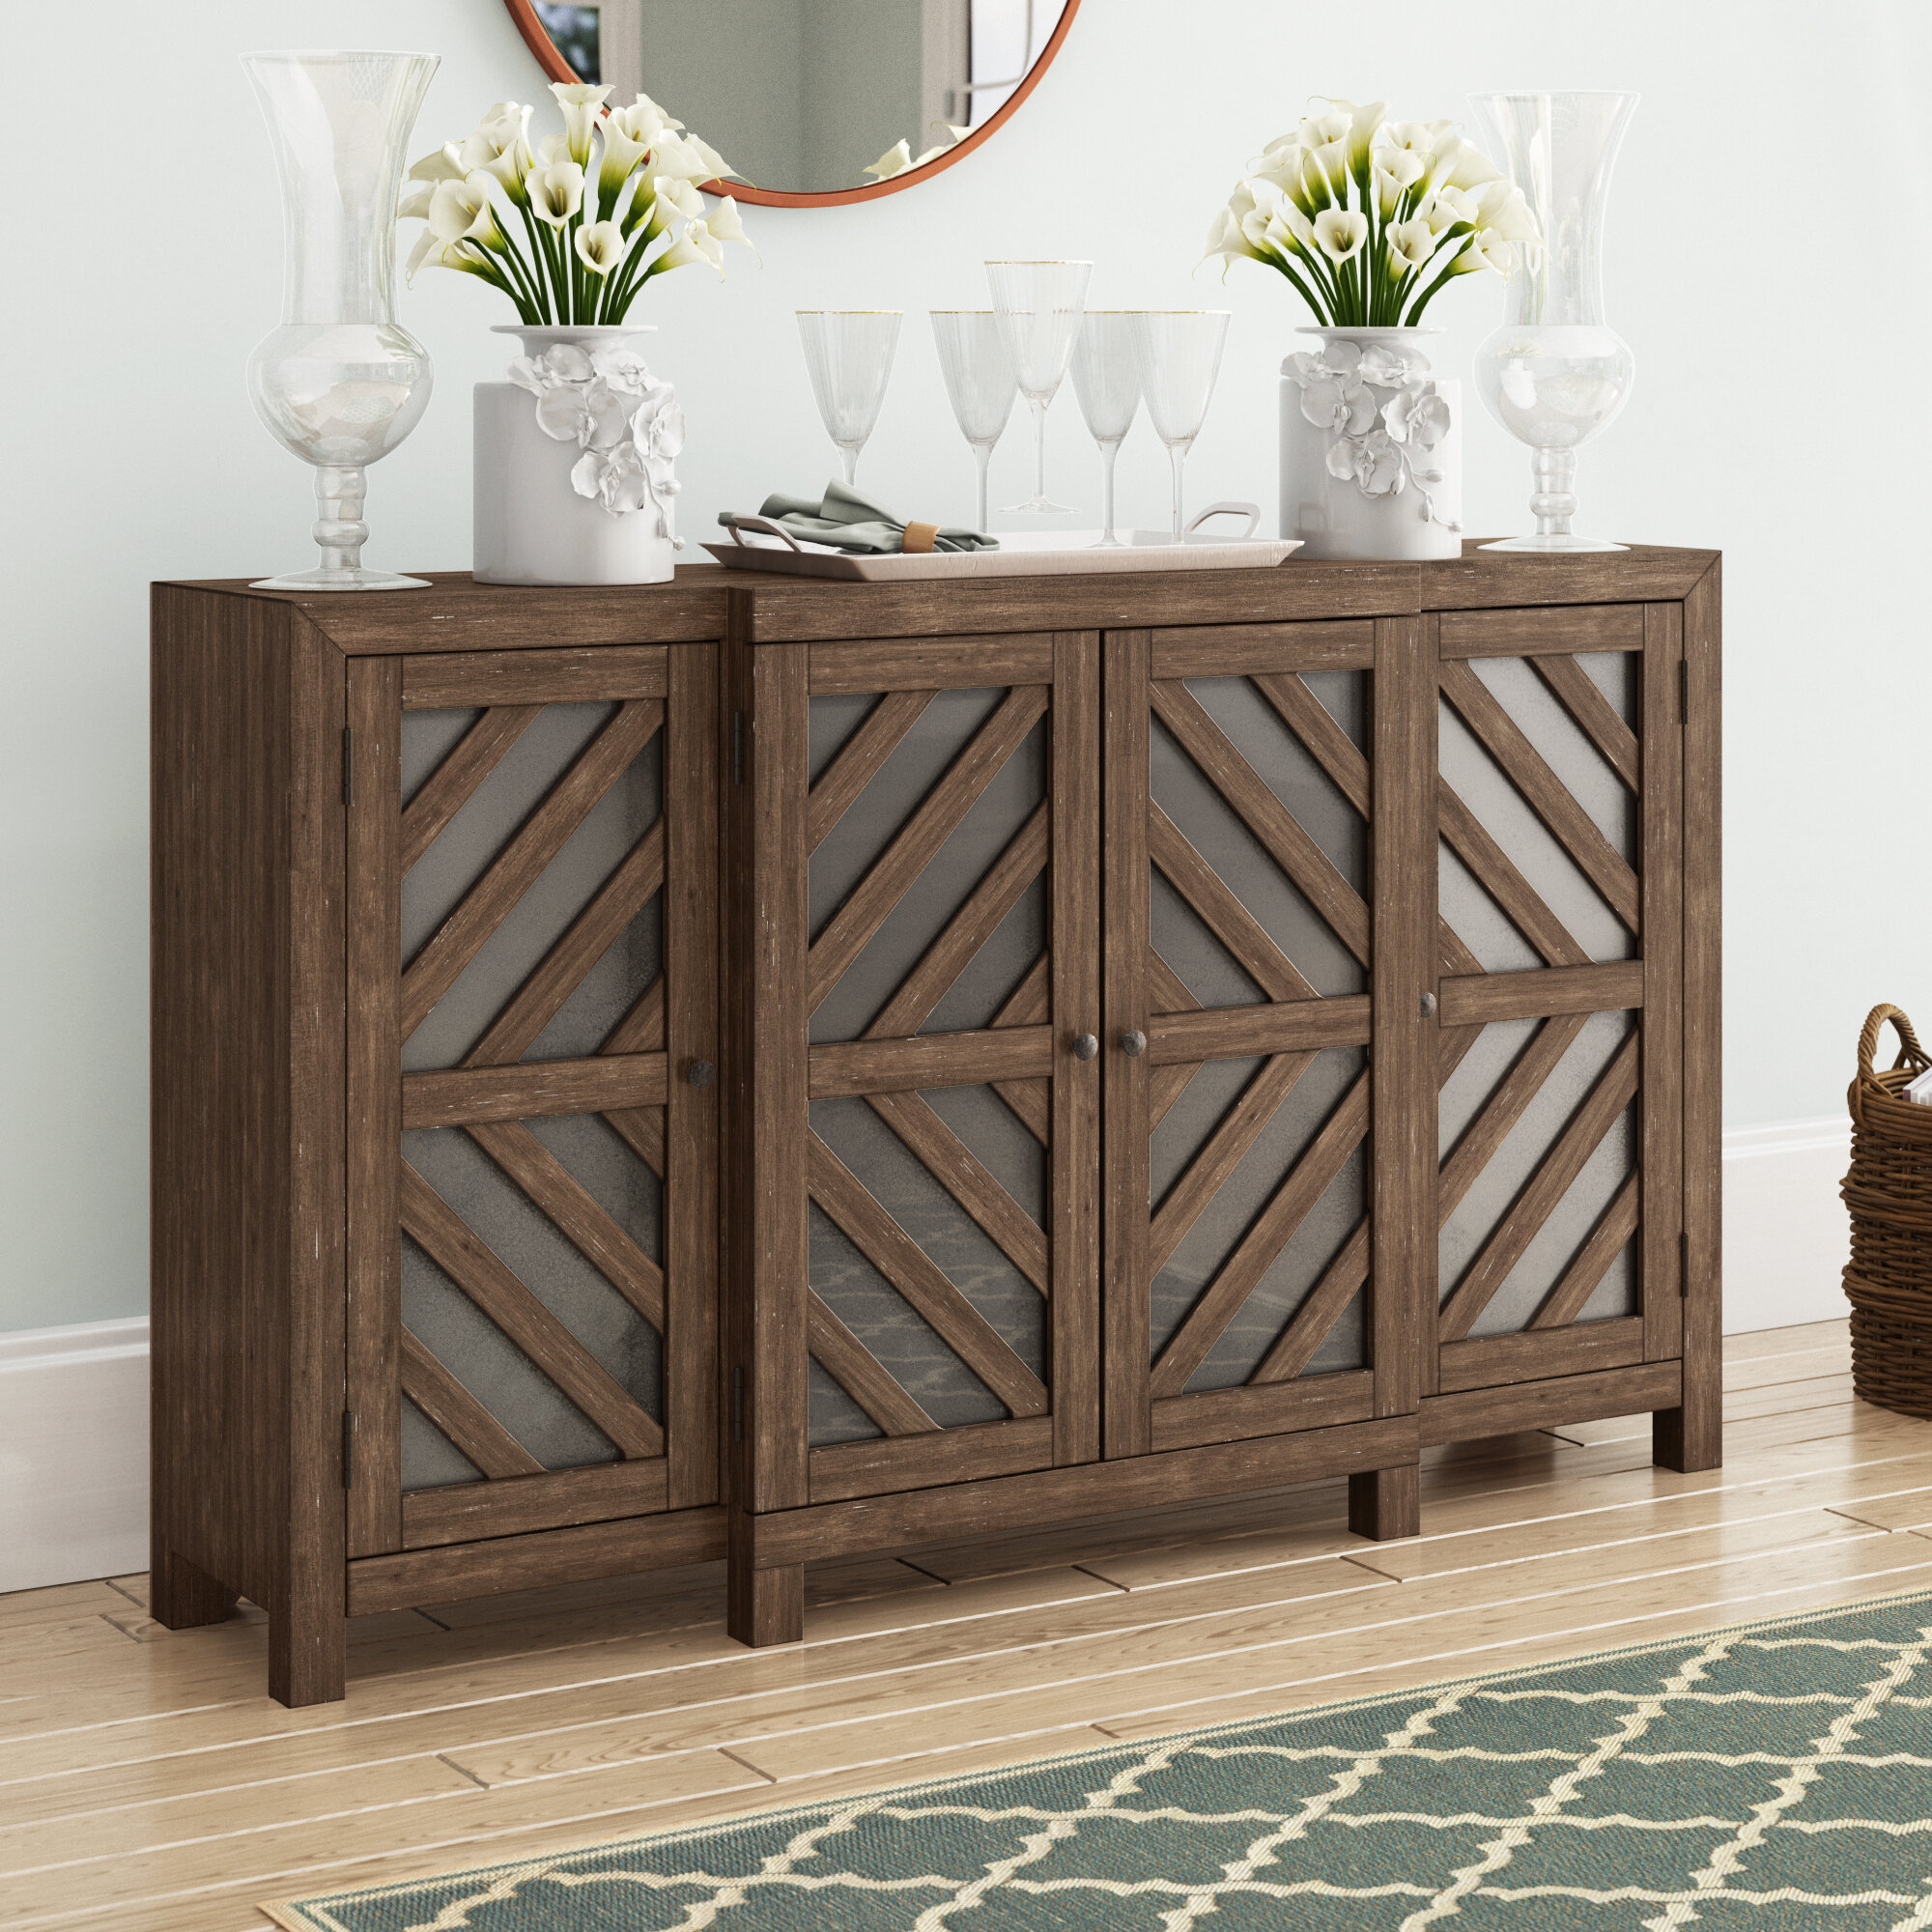 Antique Credenza | Wayfair Intended For Most Popular Adelbert Credenzas (#6 of 20)